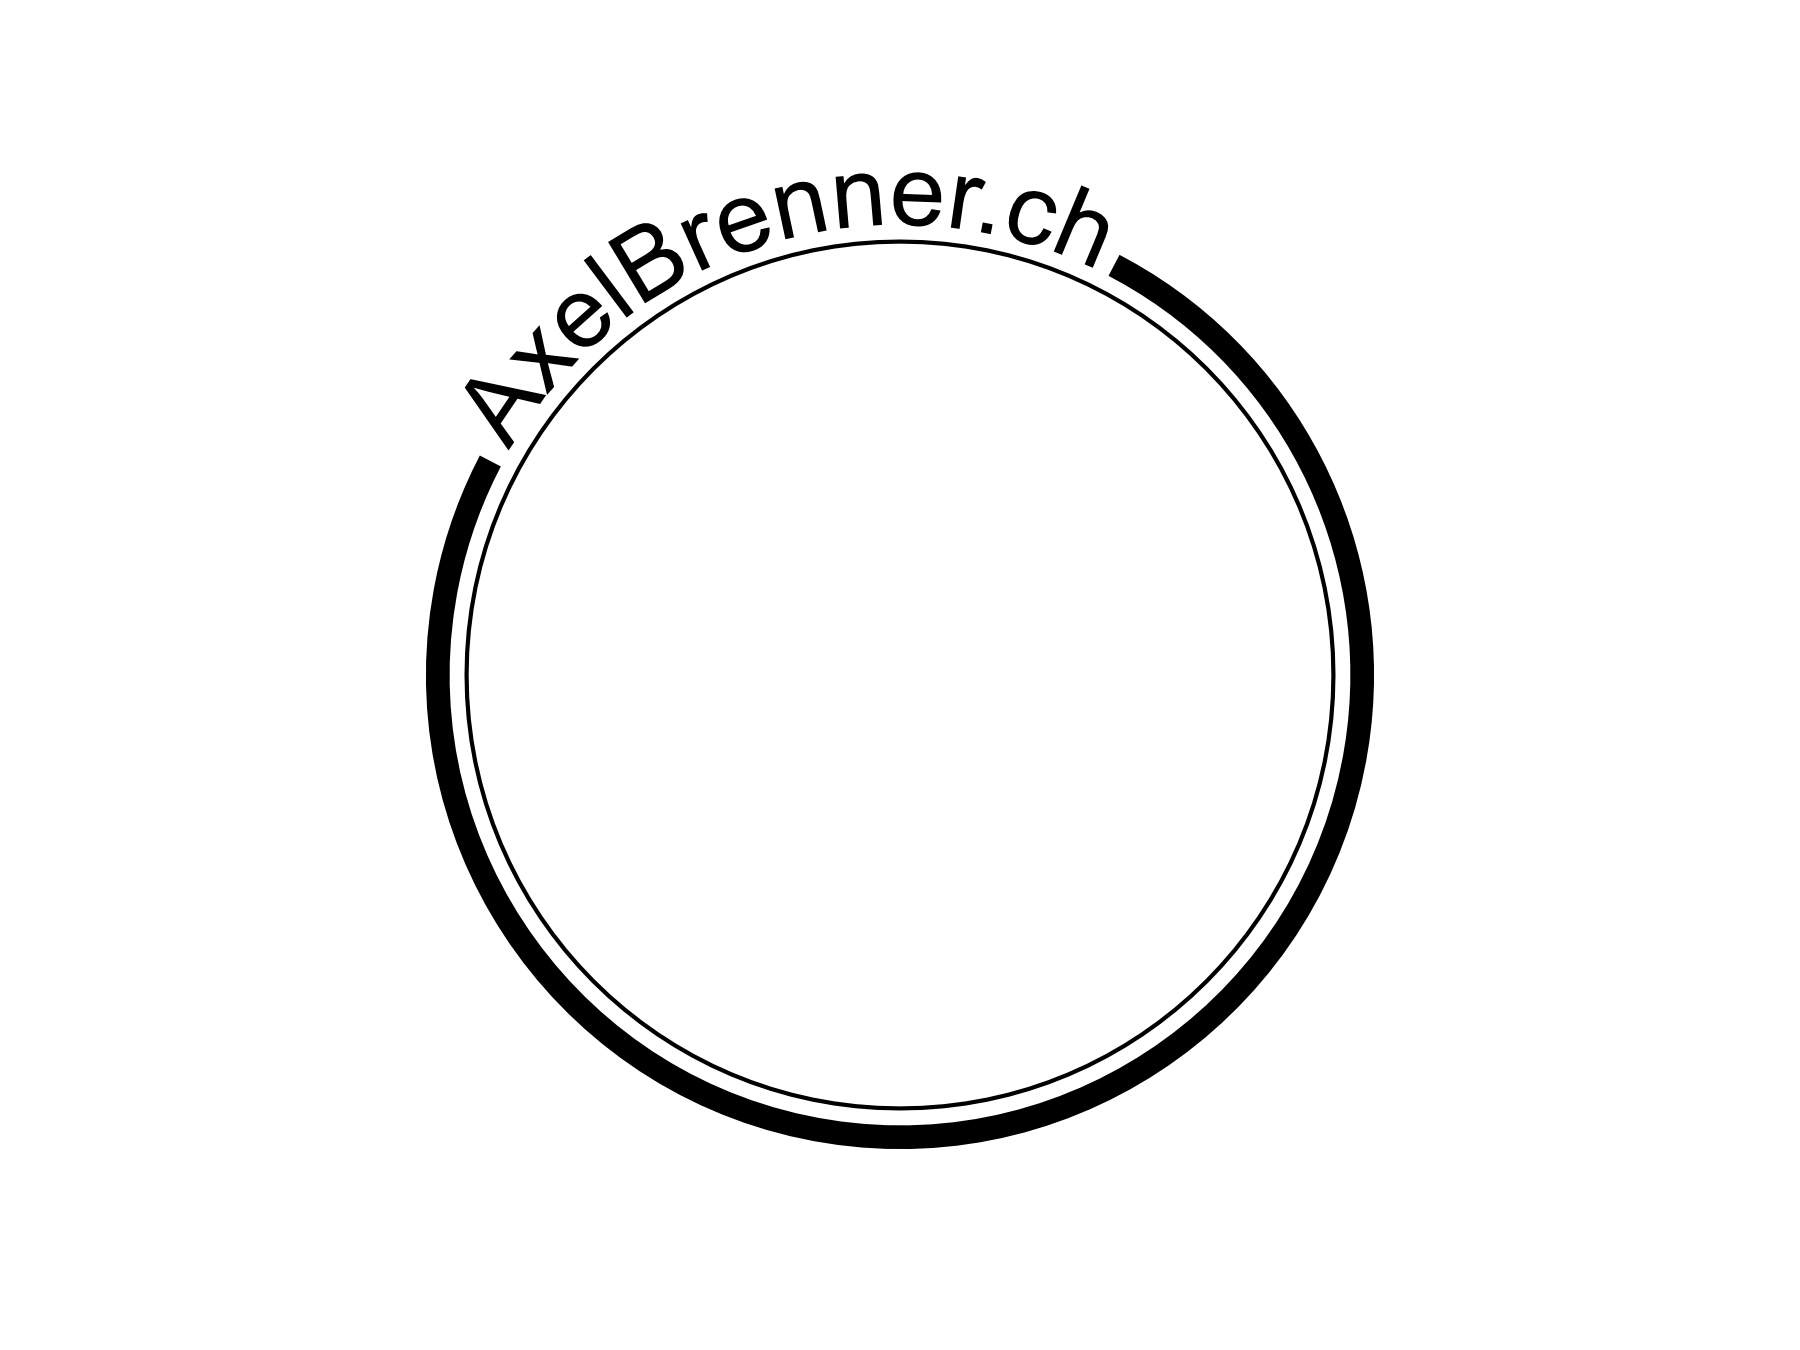 axelbrenner.ch